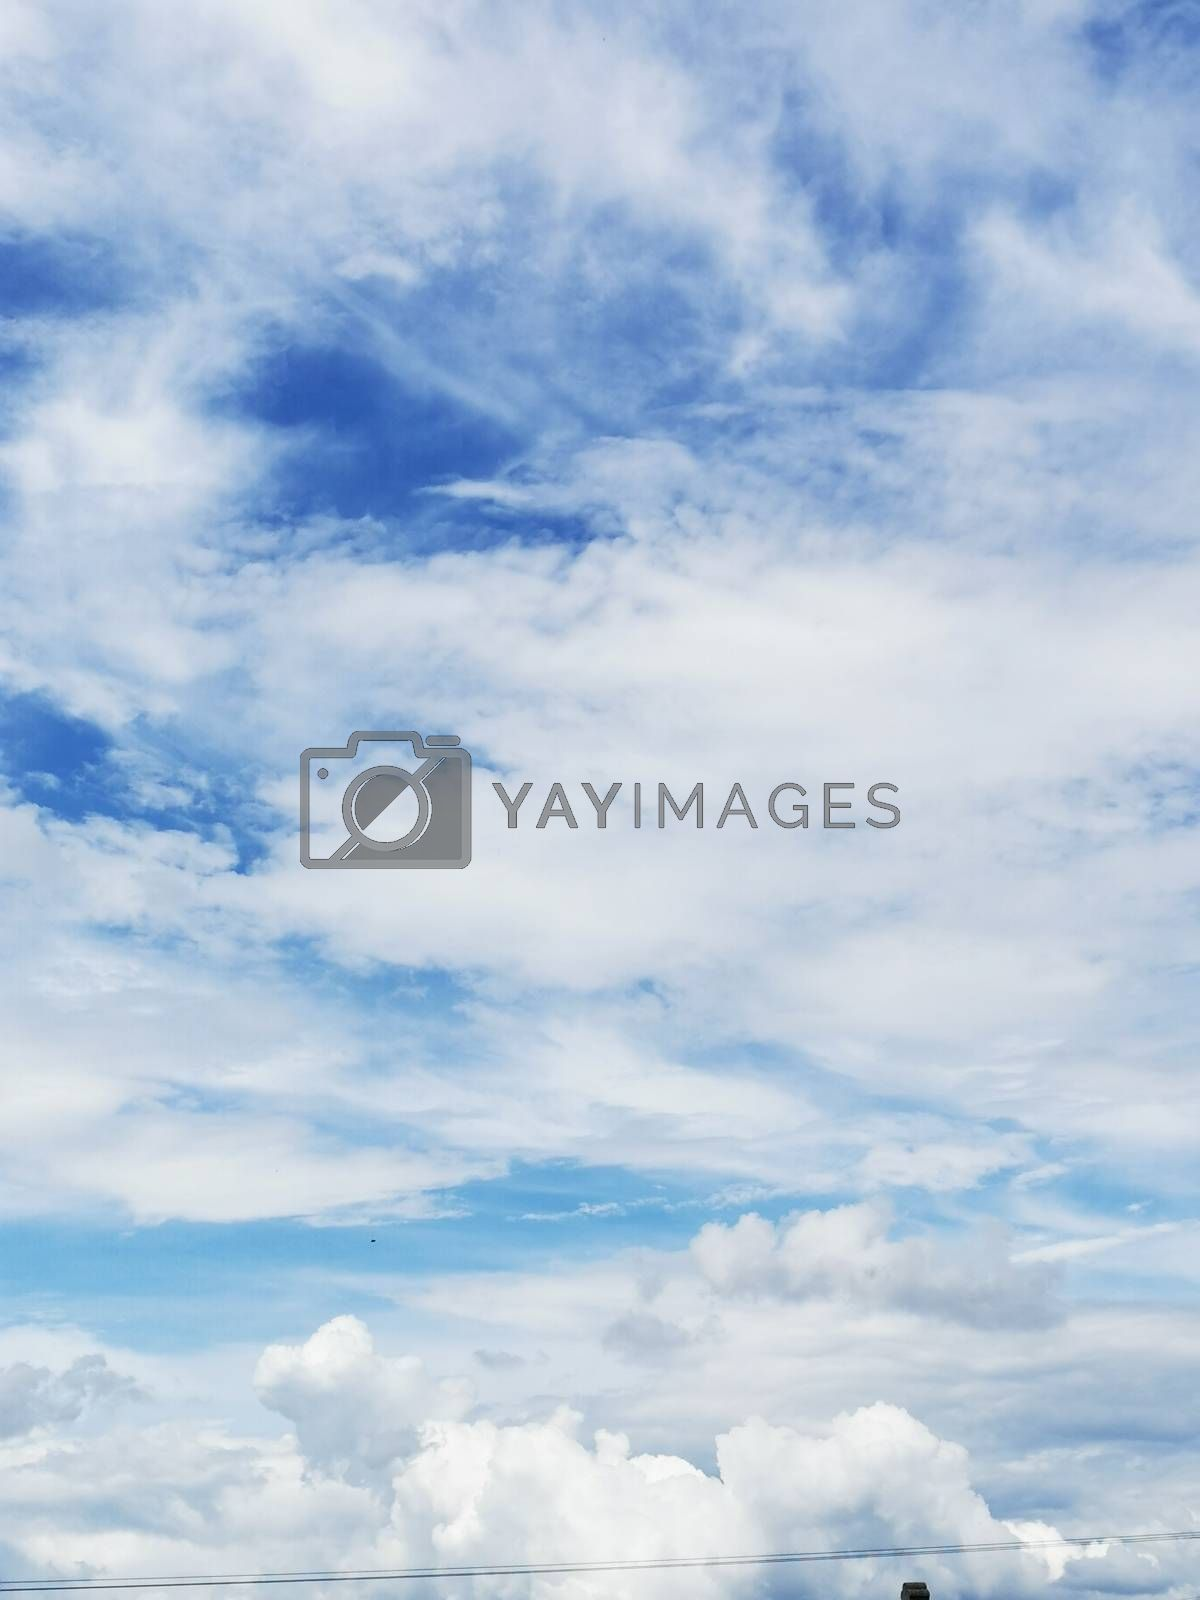 Royalty free image of A group of clouds in the sky by balage941